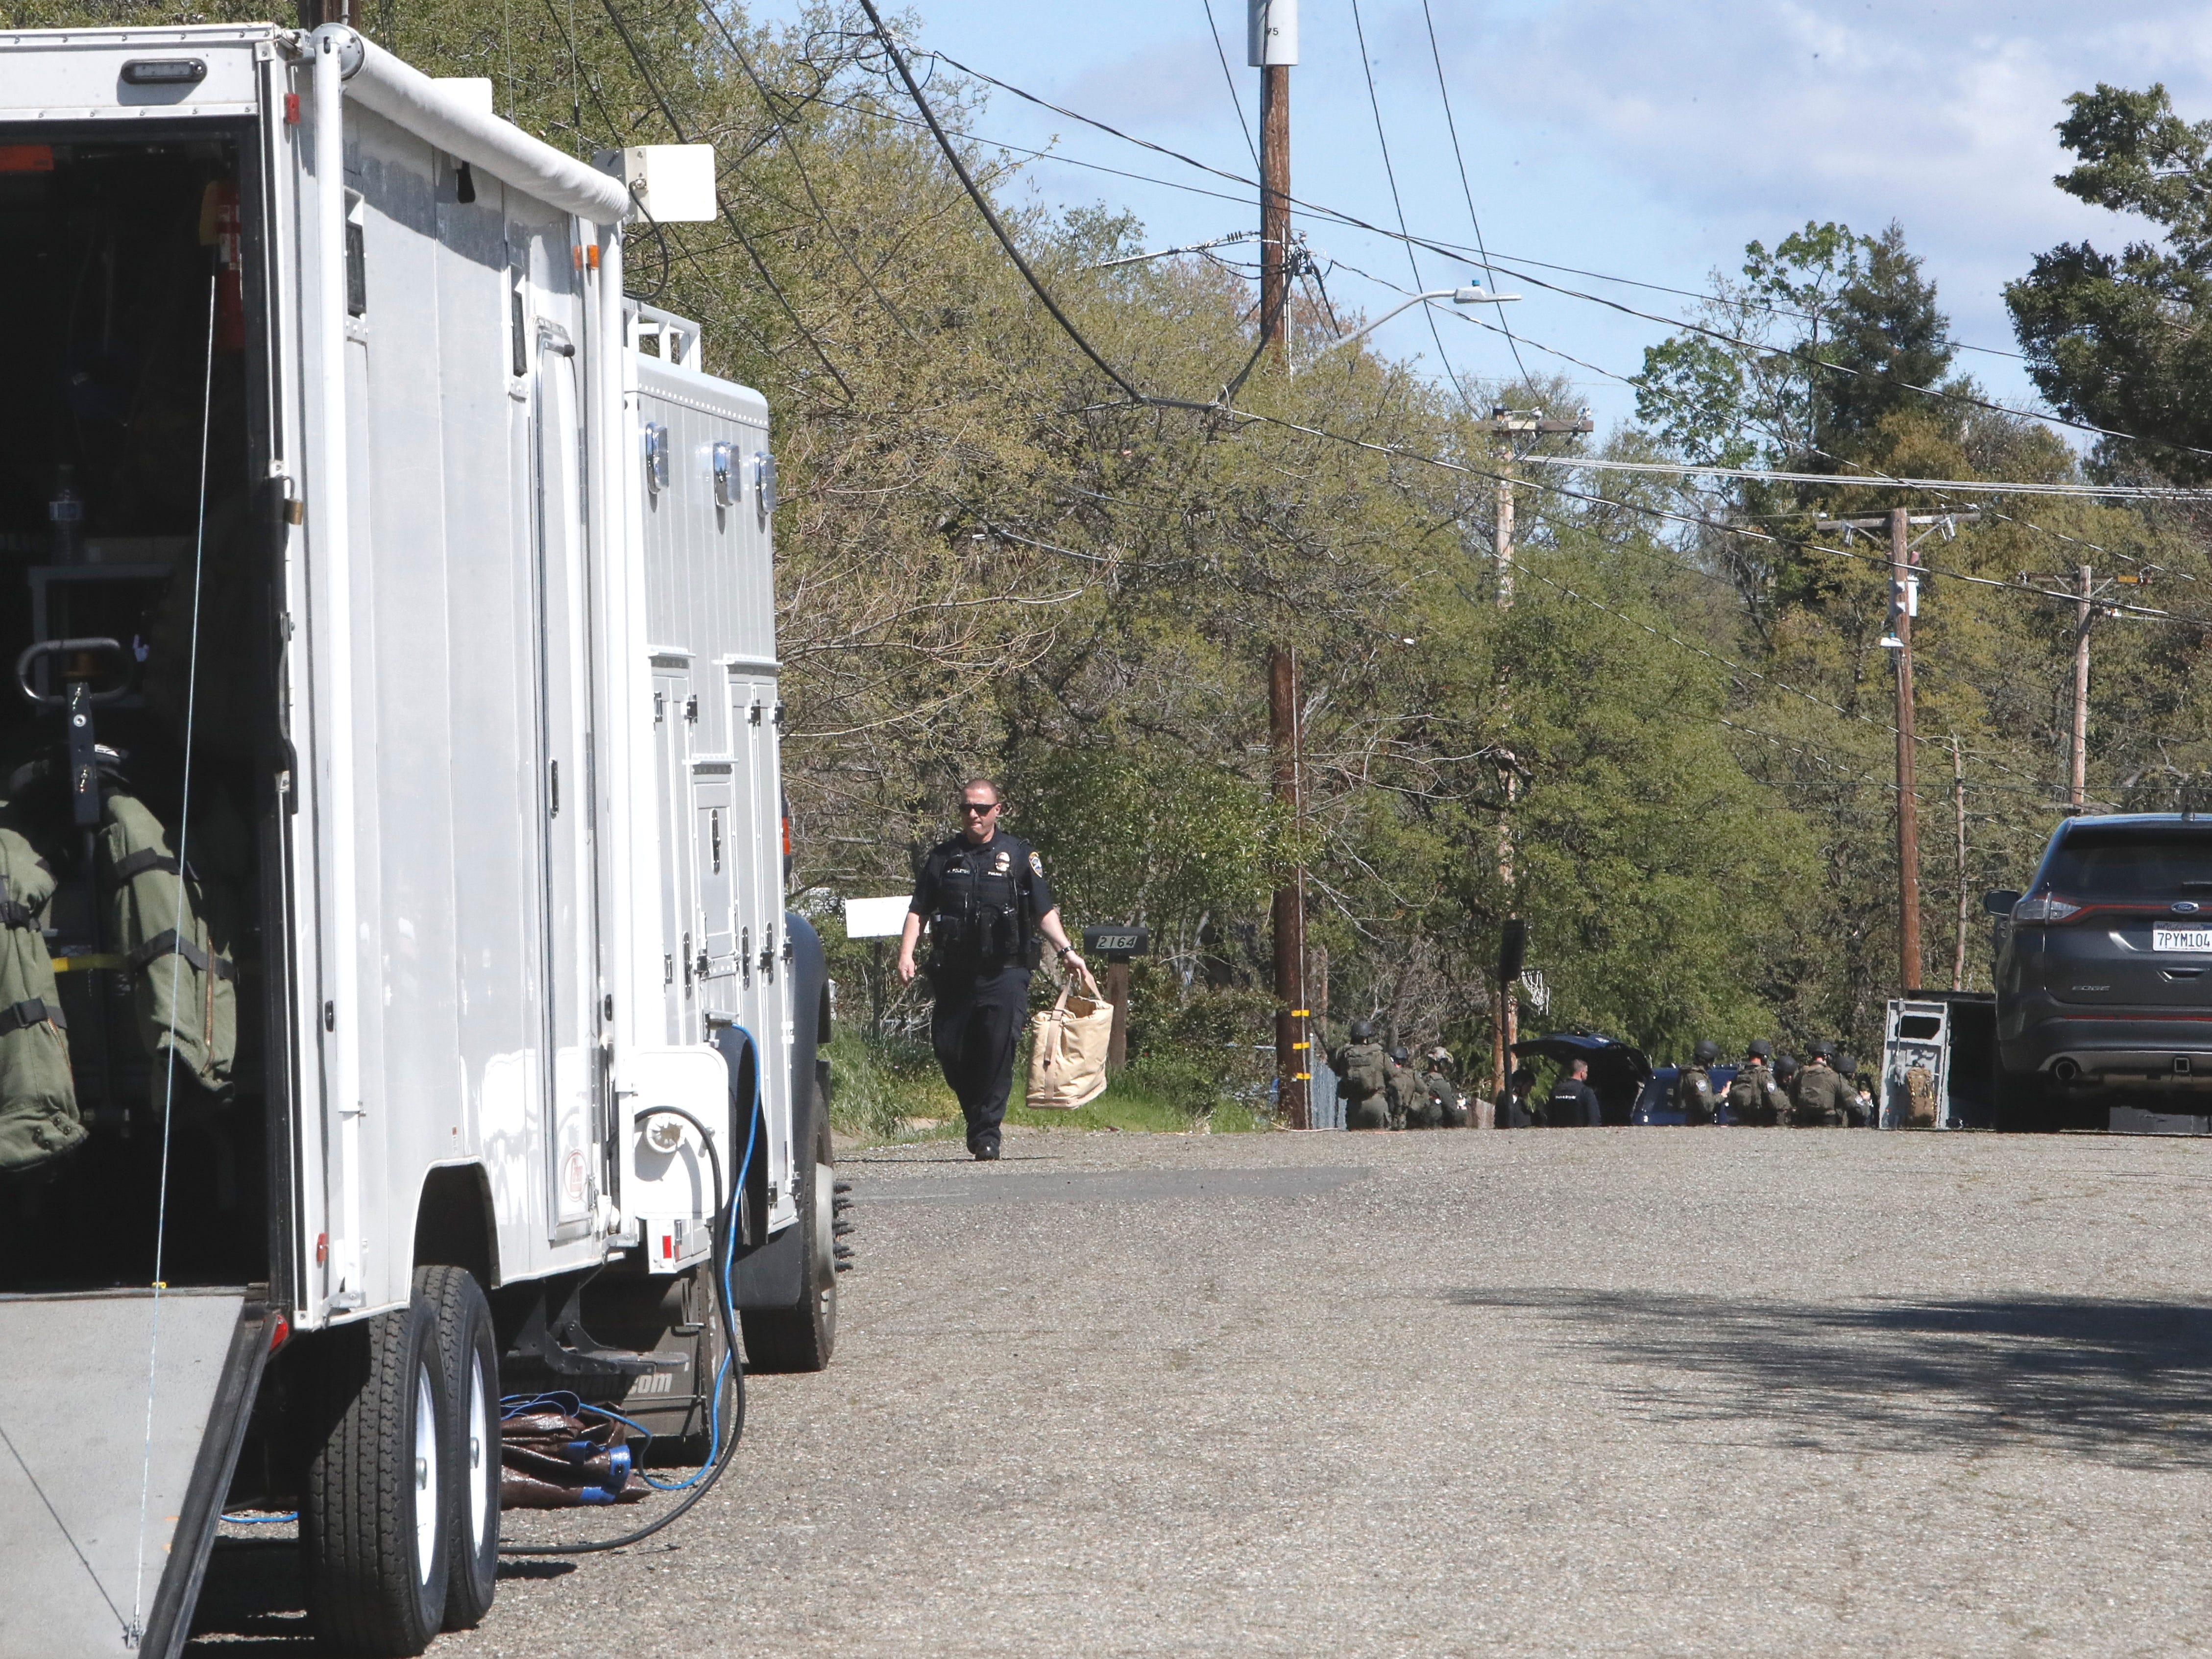 A SWAT team gathers outside a home on Oxford Road where a gunman was holed up for about eight hours Friday.